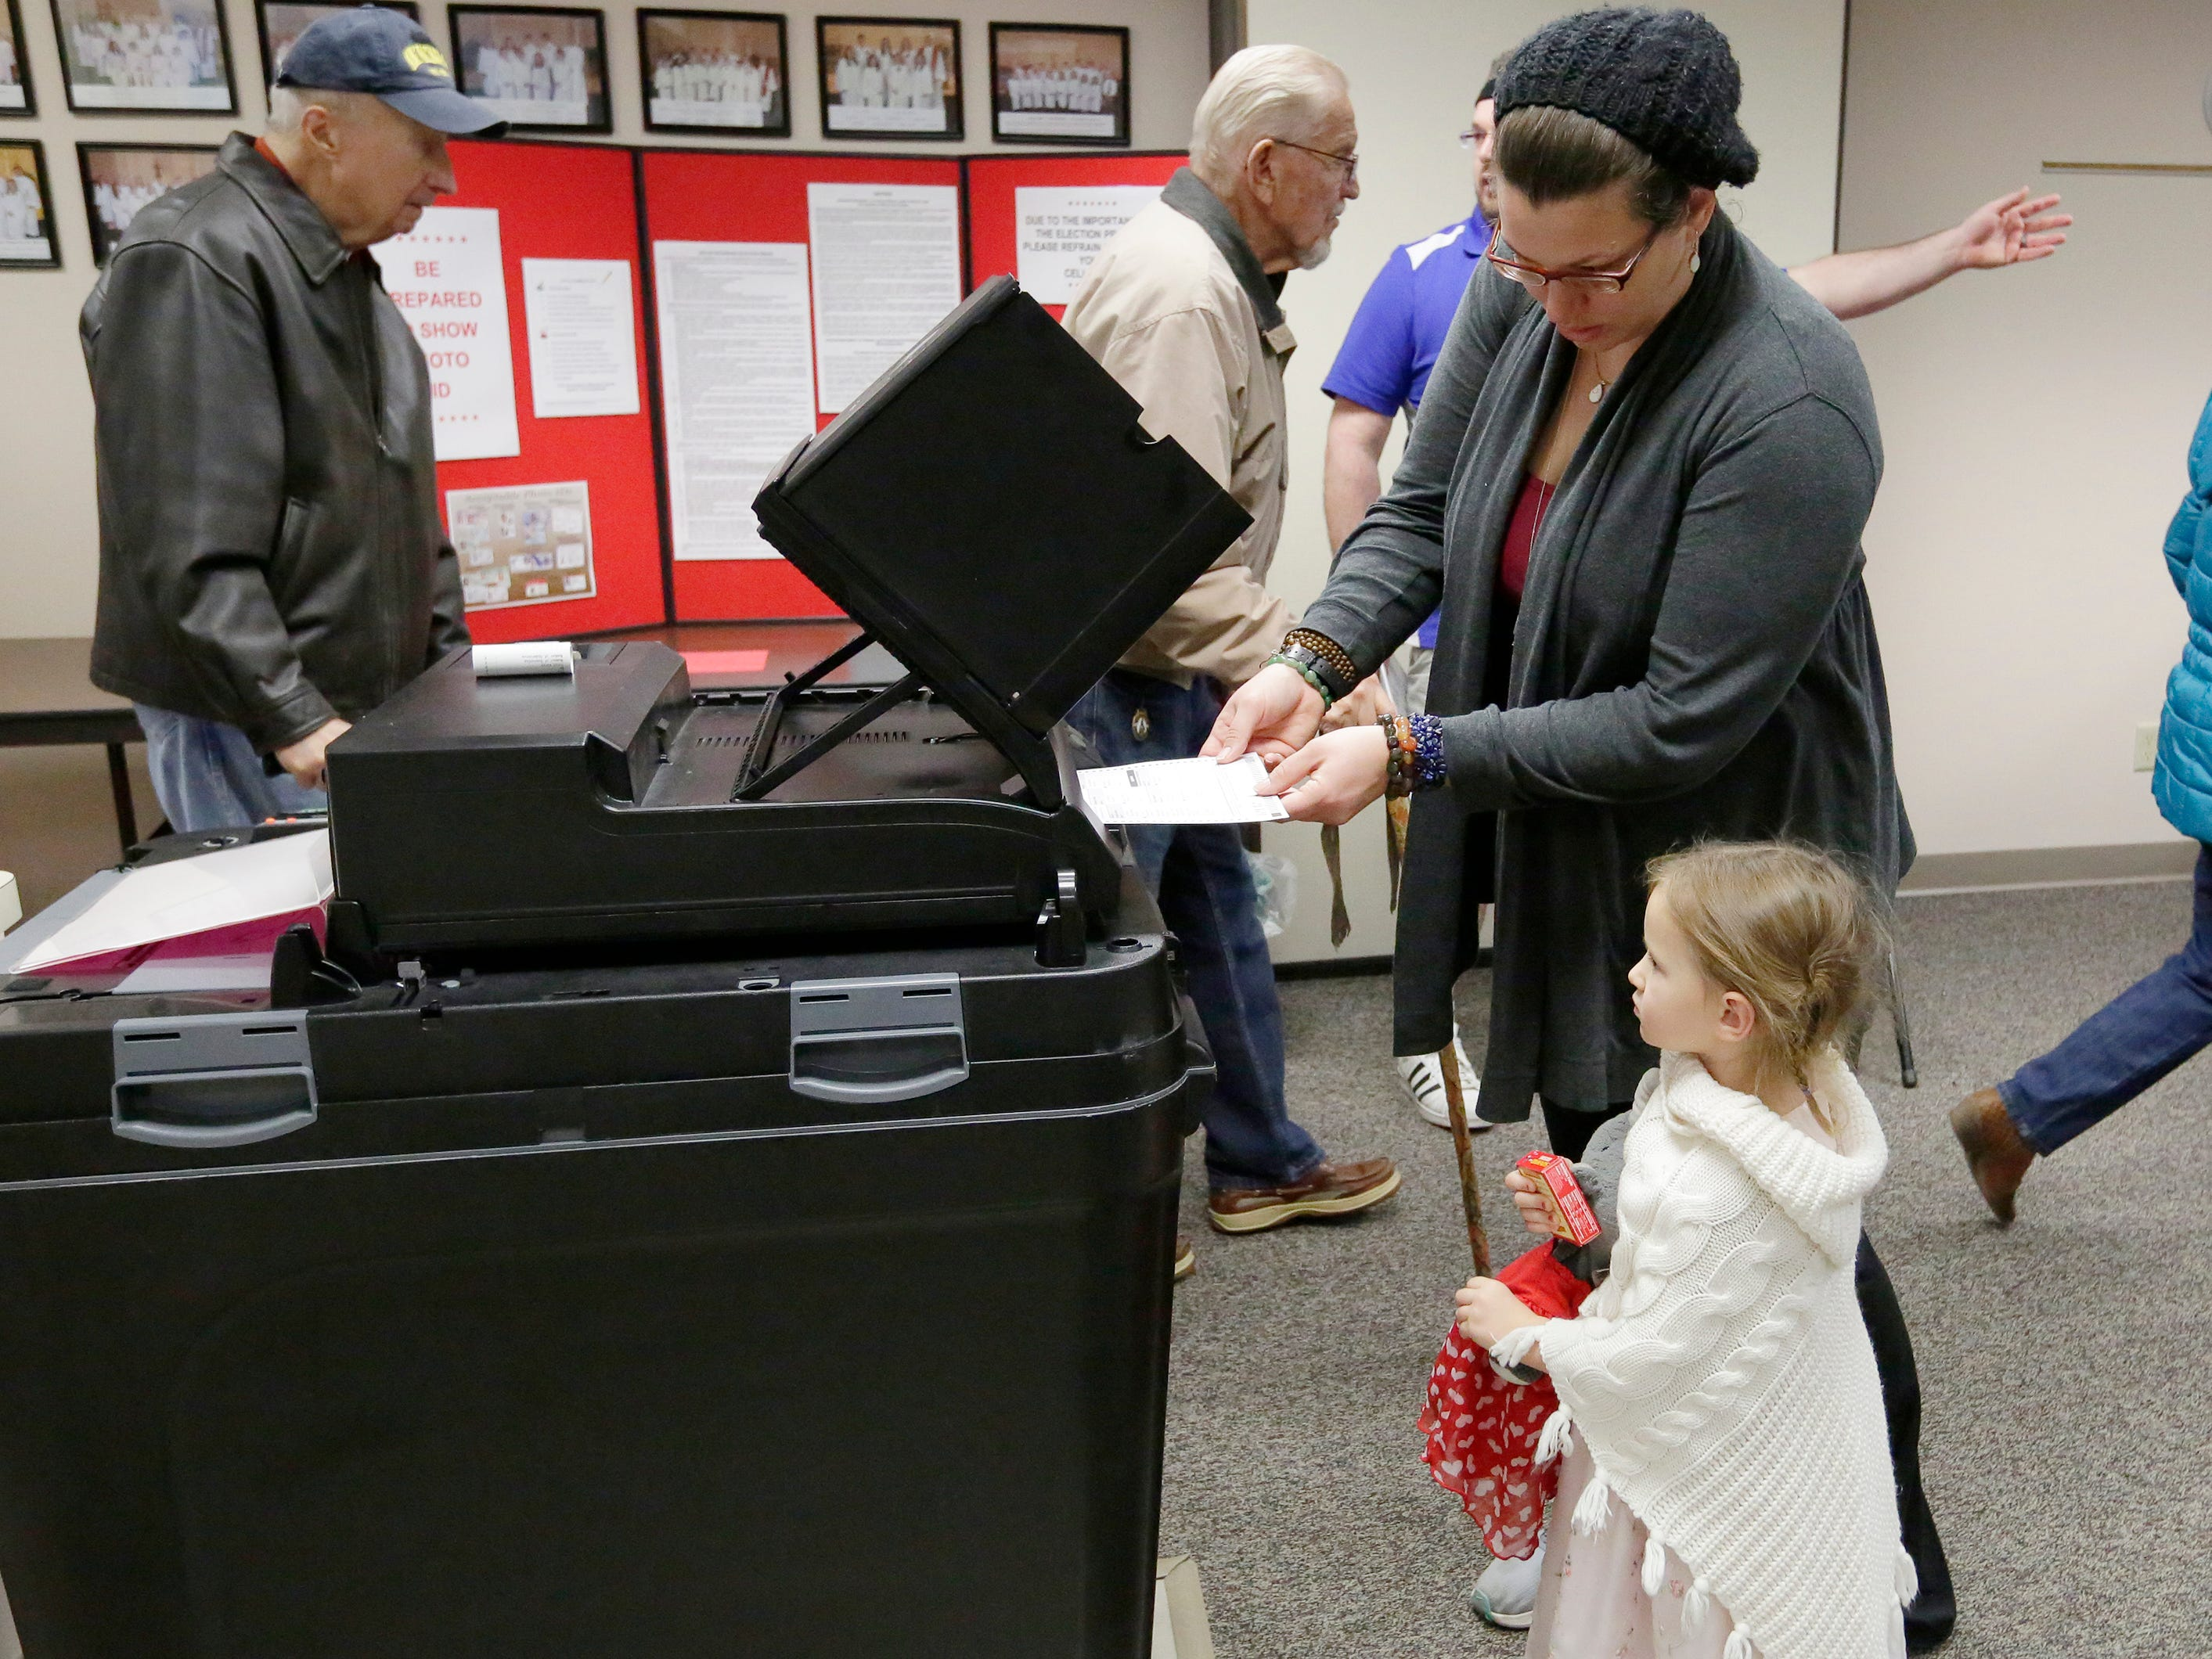 Jamie Mathieus inserts her ballot into the voting machine as her daughter Saphiera Ward watches at voting district 10 at Calvary Lutheran Church.  The mid-term voting kept poll workers busy as voters waited in lines at most polling stations in Oshkosh, Wis., Tuesday, November 6, 2018.  